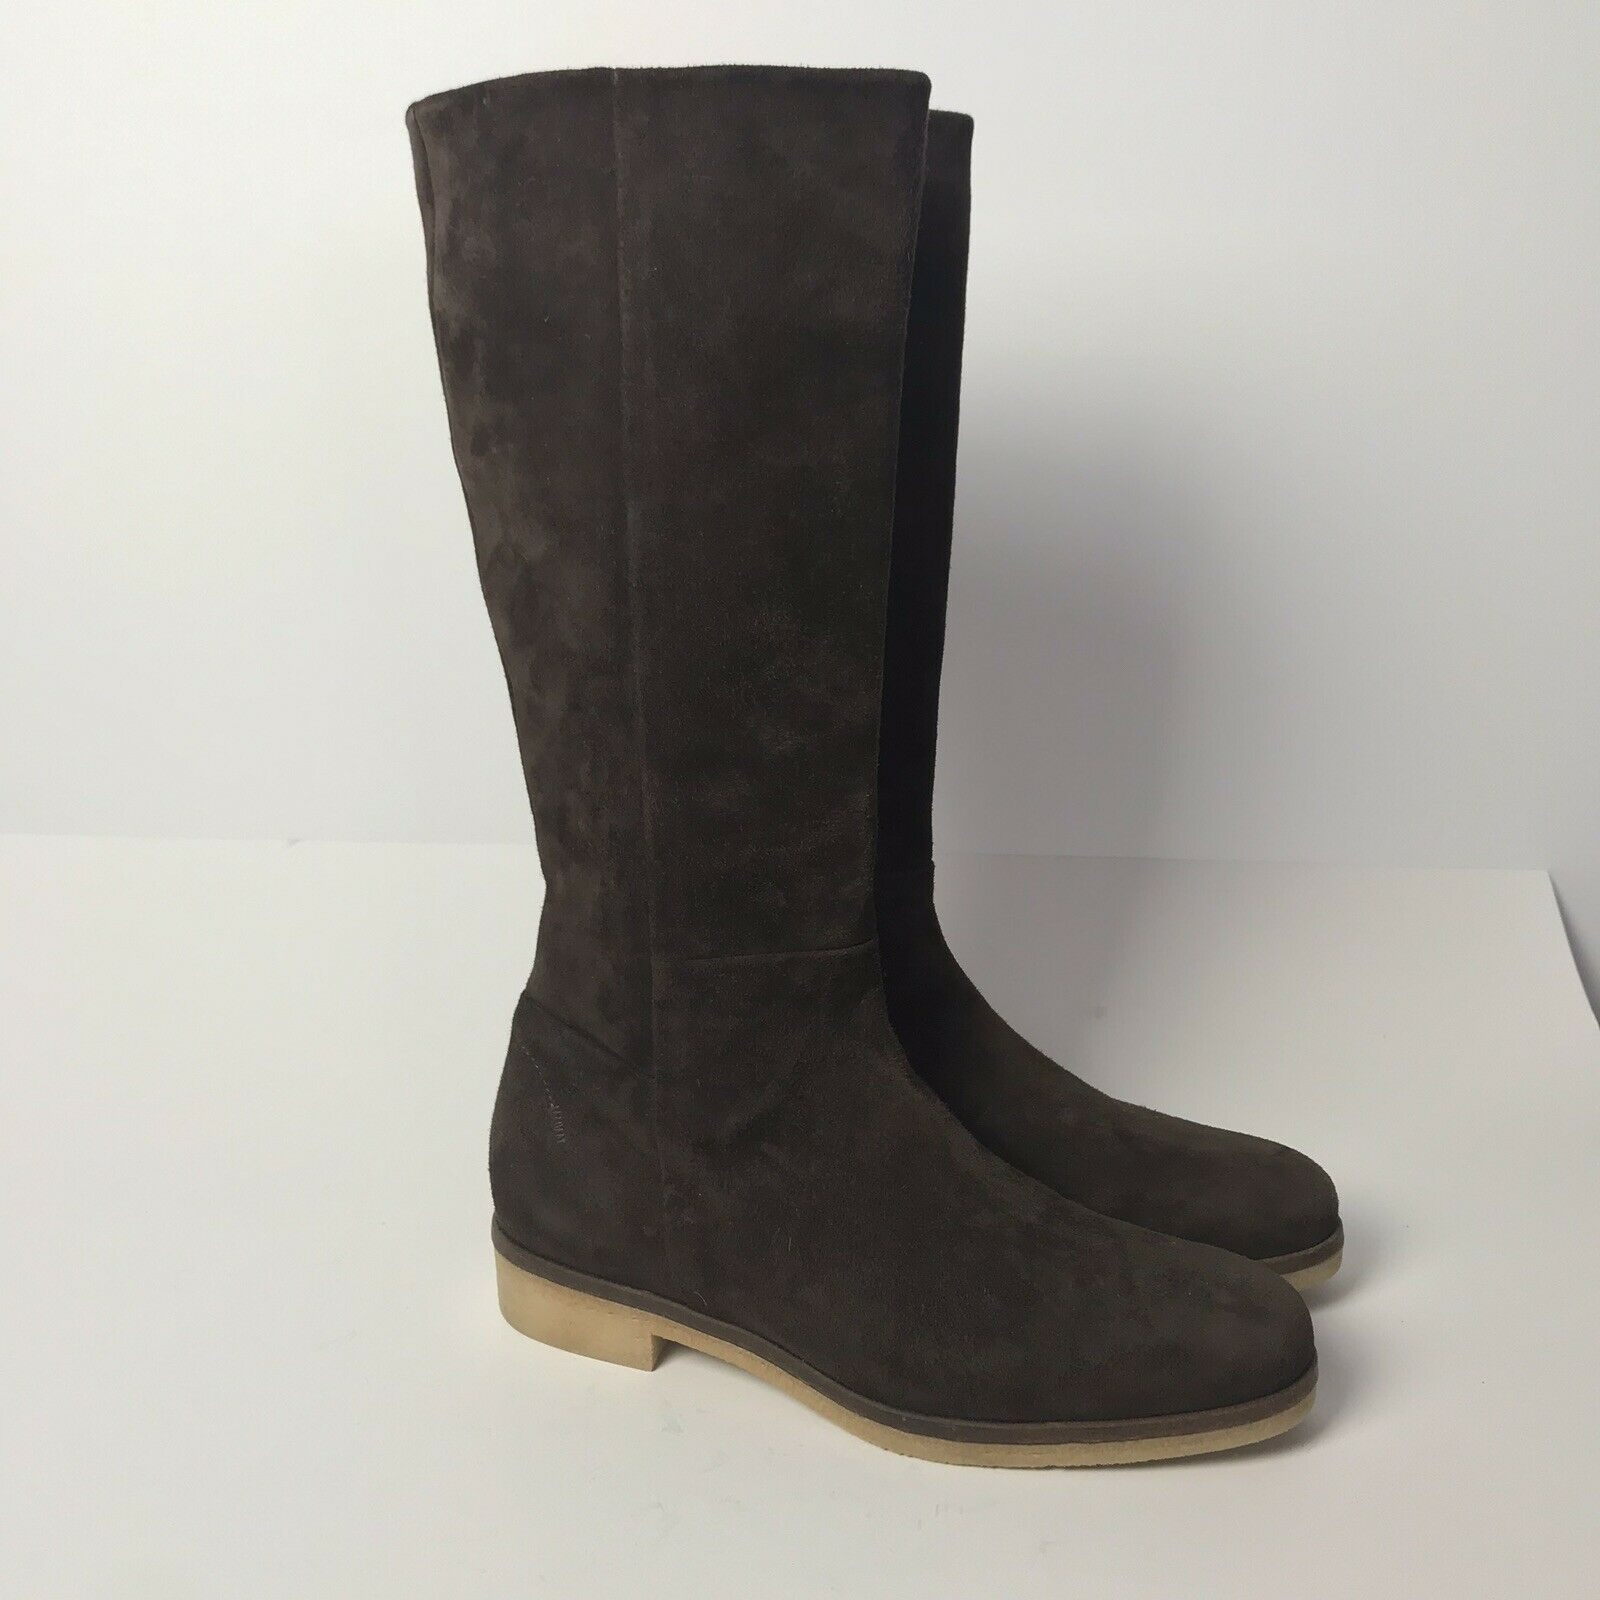 Alberto Fermani Morgana Solid Brown Suede Flat Boots sz 37 Side Zipper